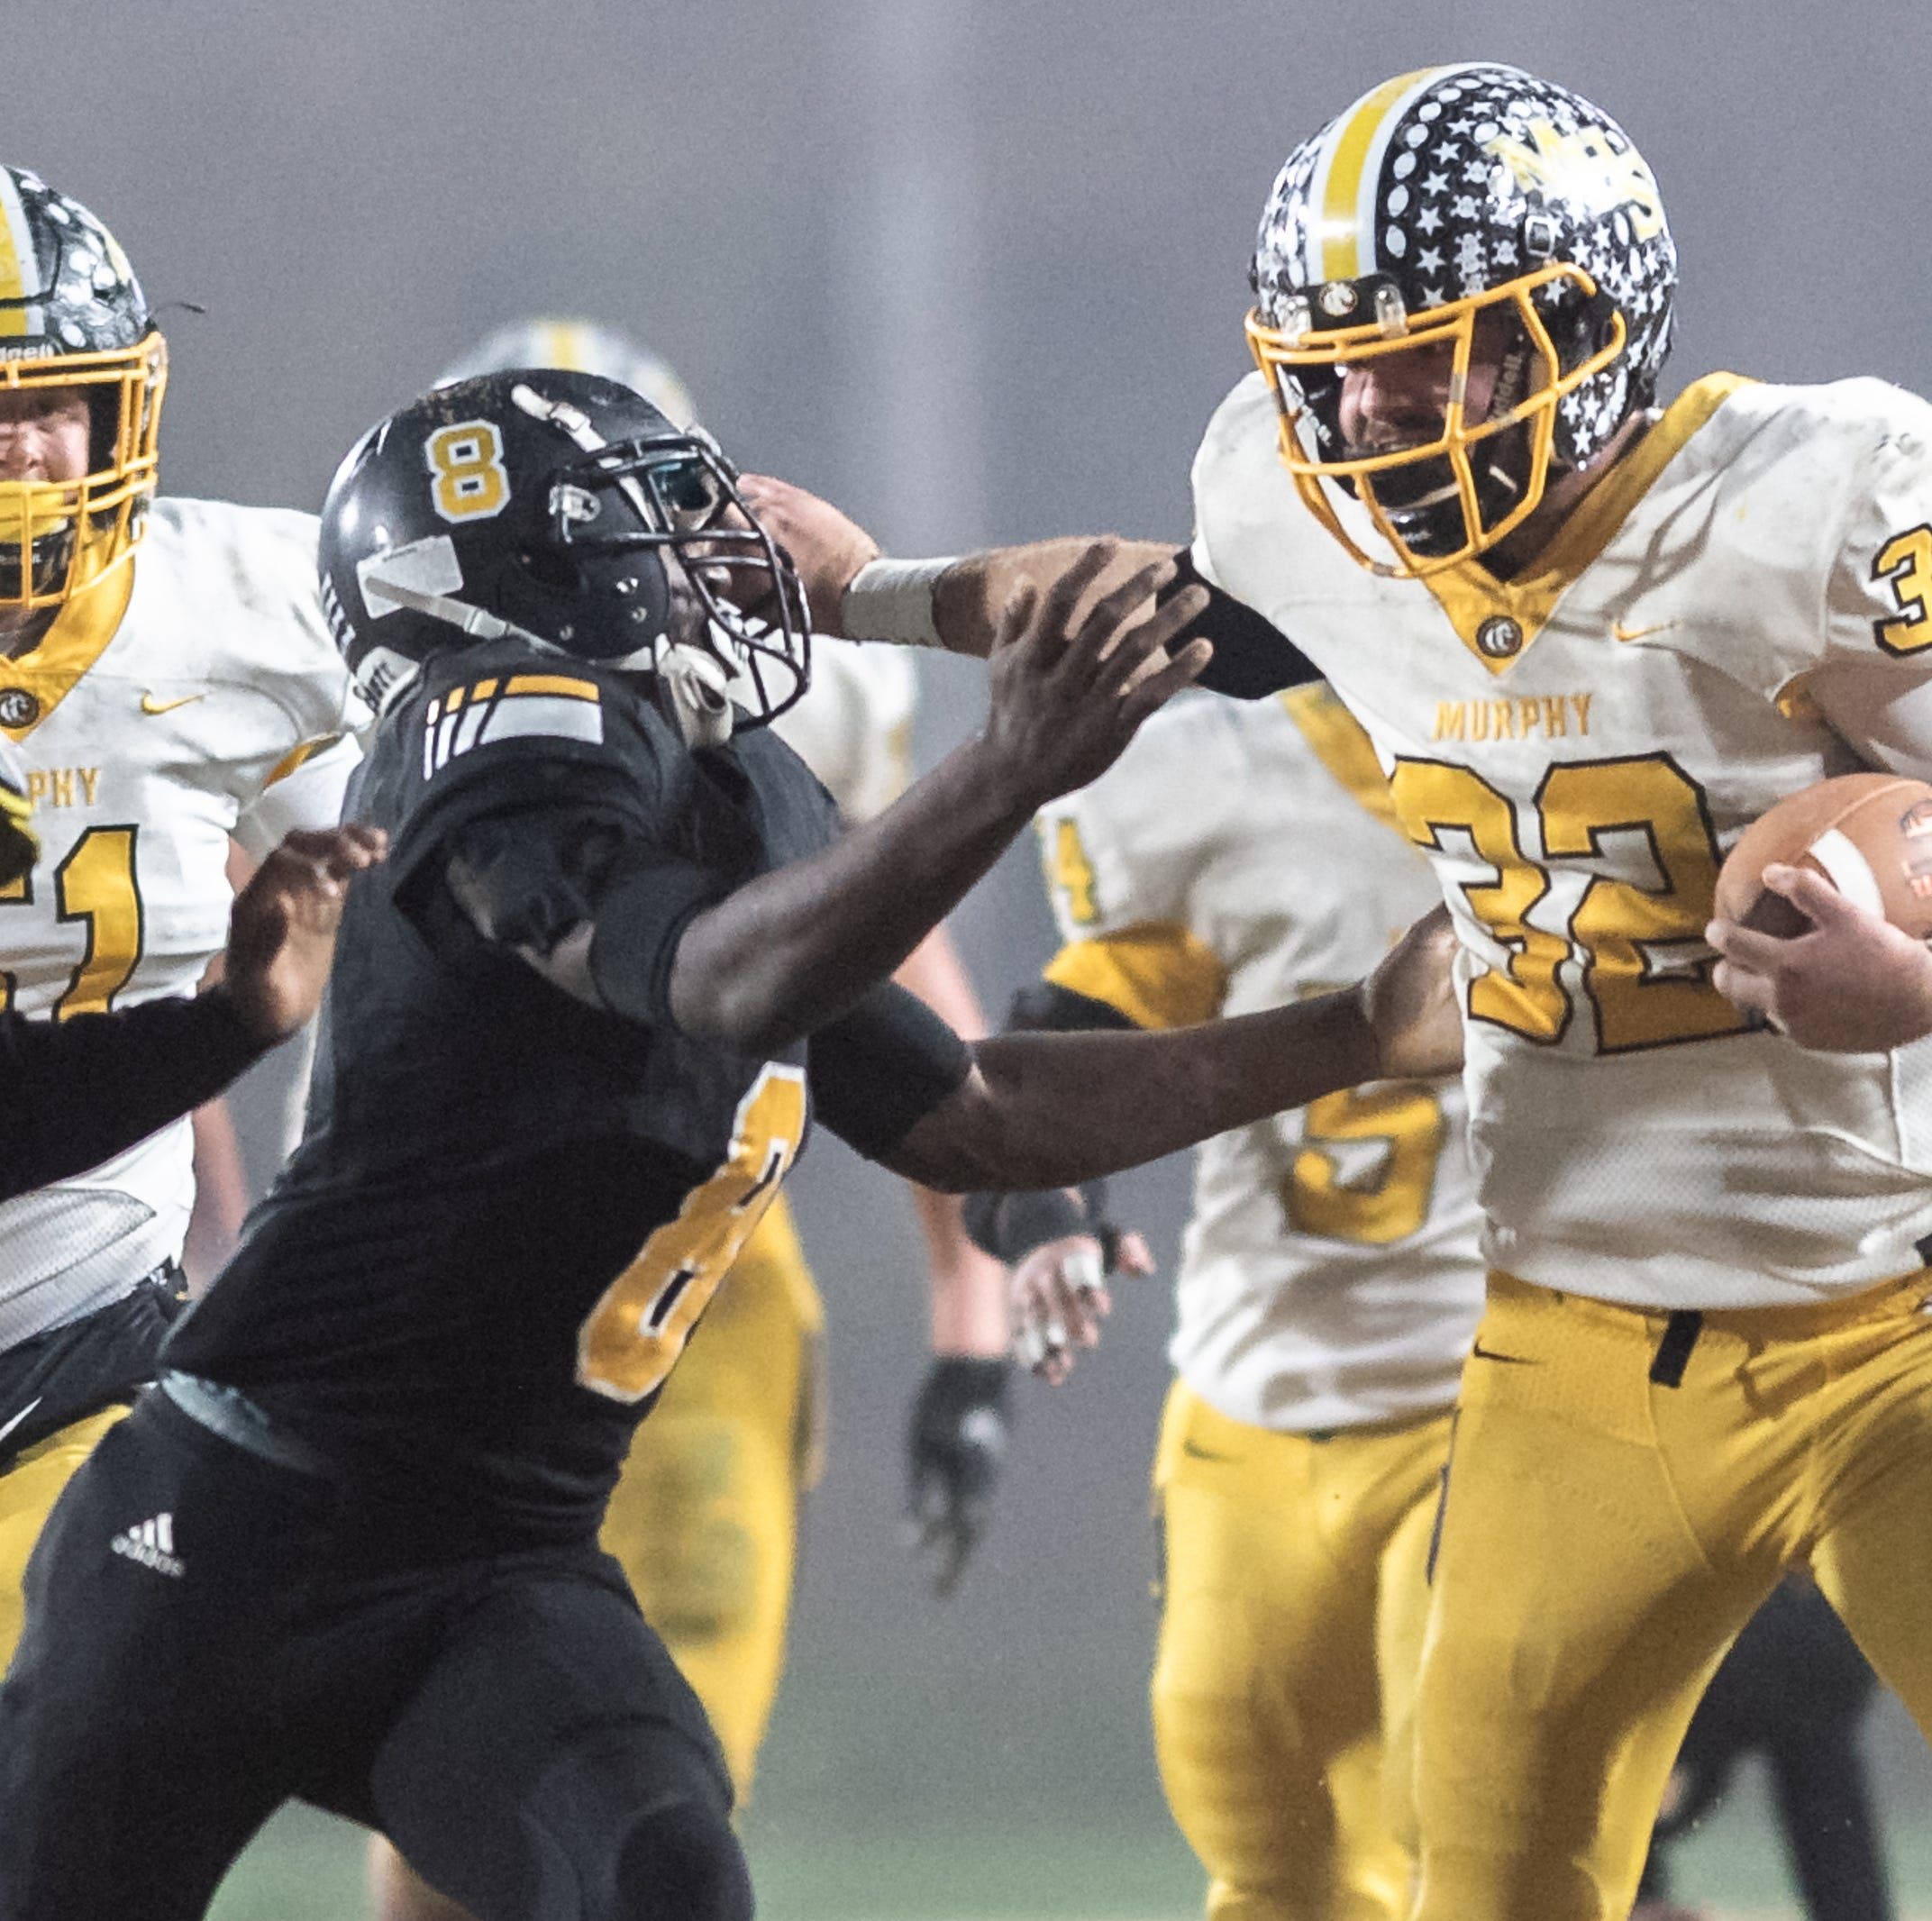 Murphy's Chase Roberts honors teammate with big game